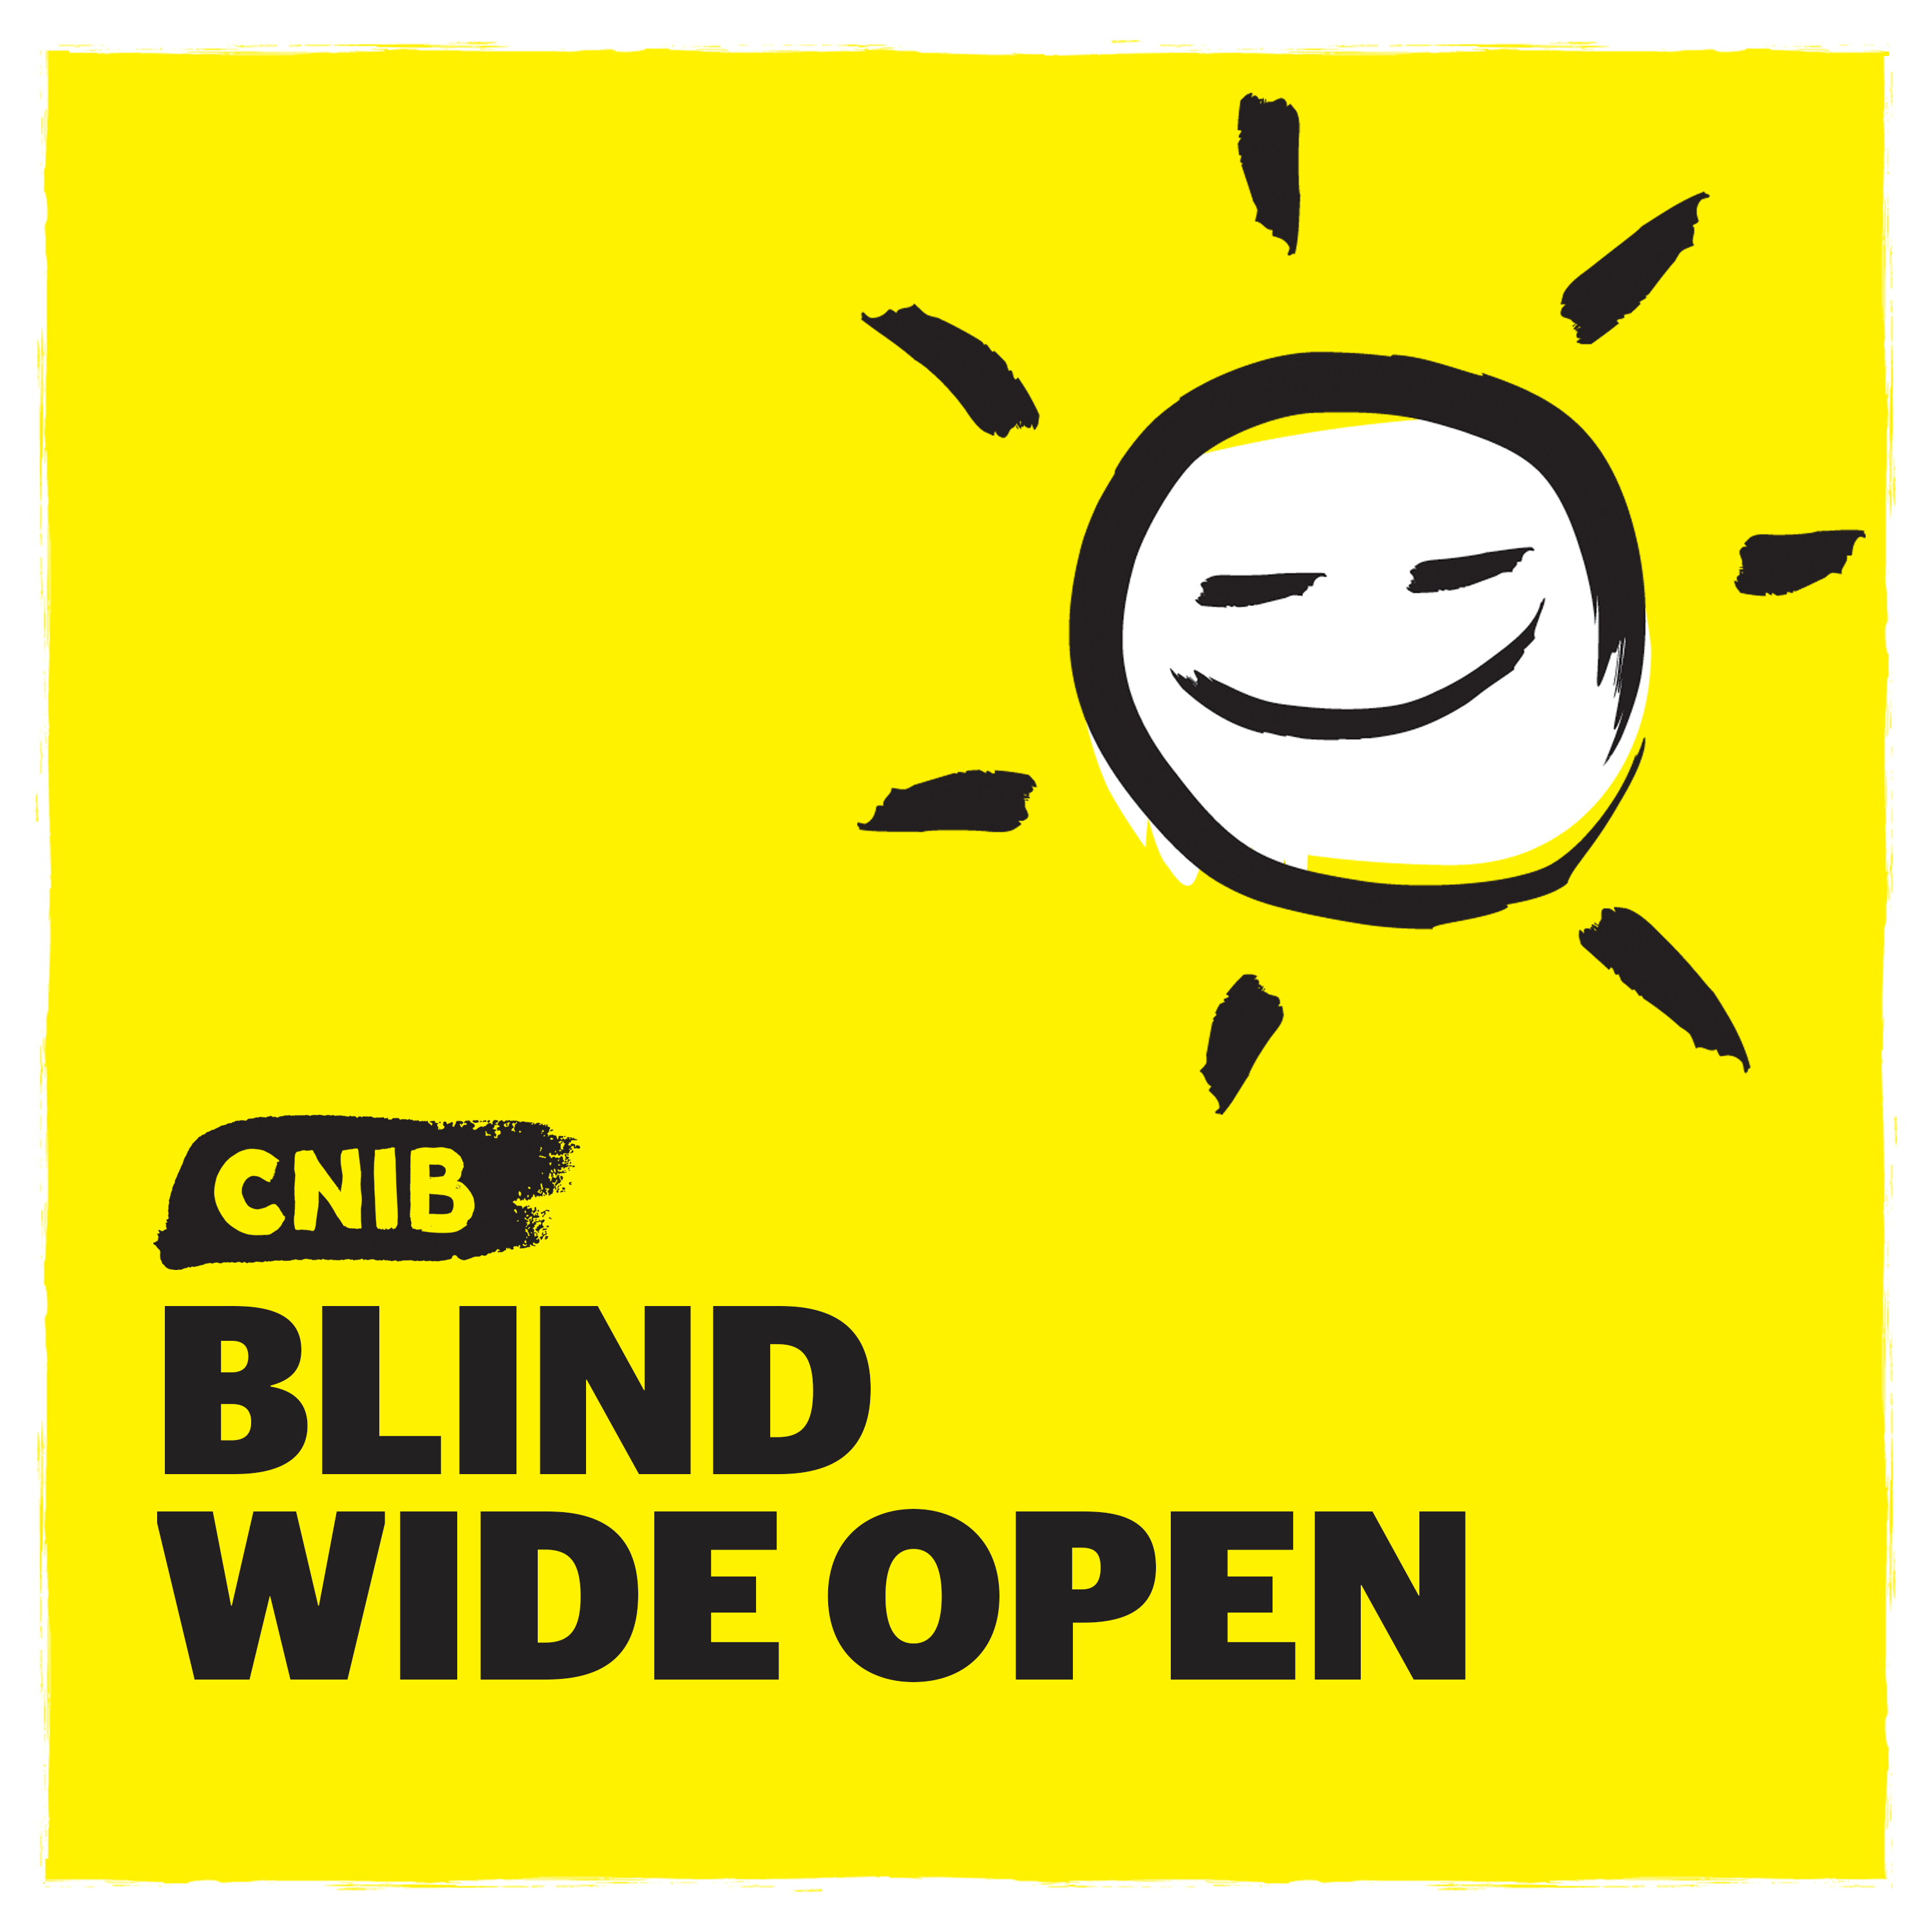 """CNIB Blind Wide Open"" with sun icon on yellow."